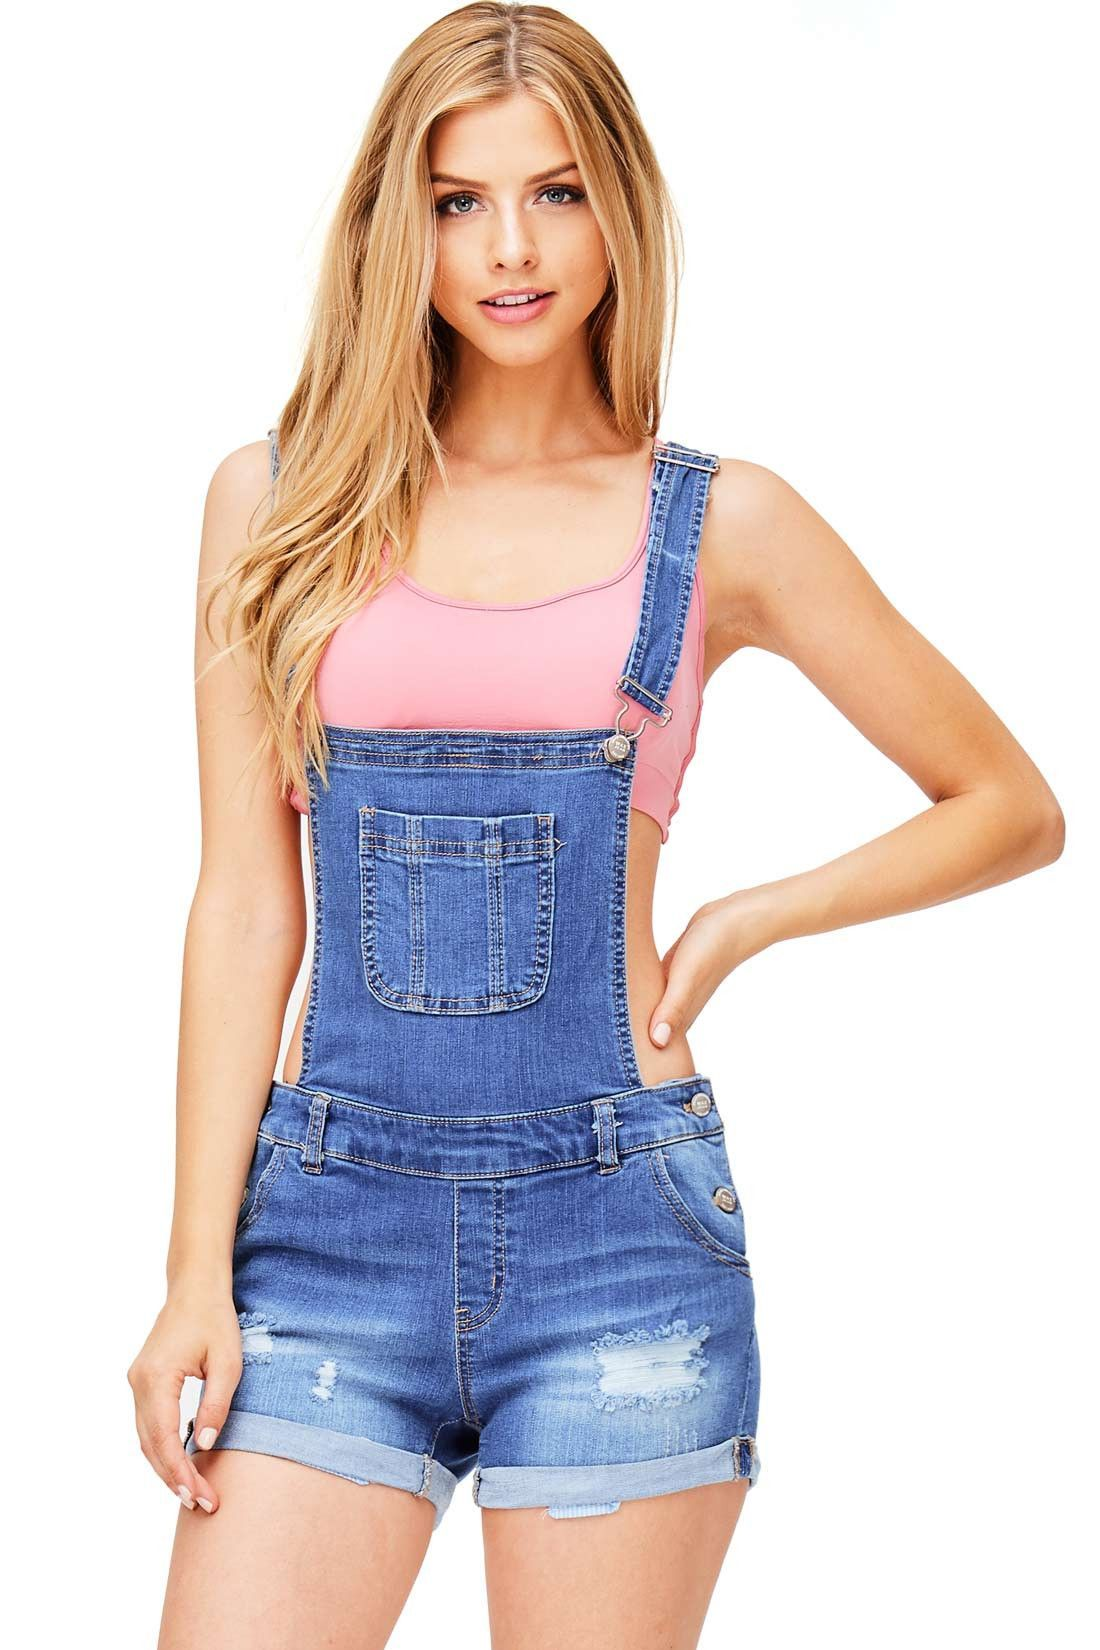 Denim short overalls with a single chest pocket and adjustable straps that  can be worn straight fa5c8b4dc209